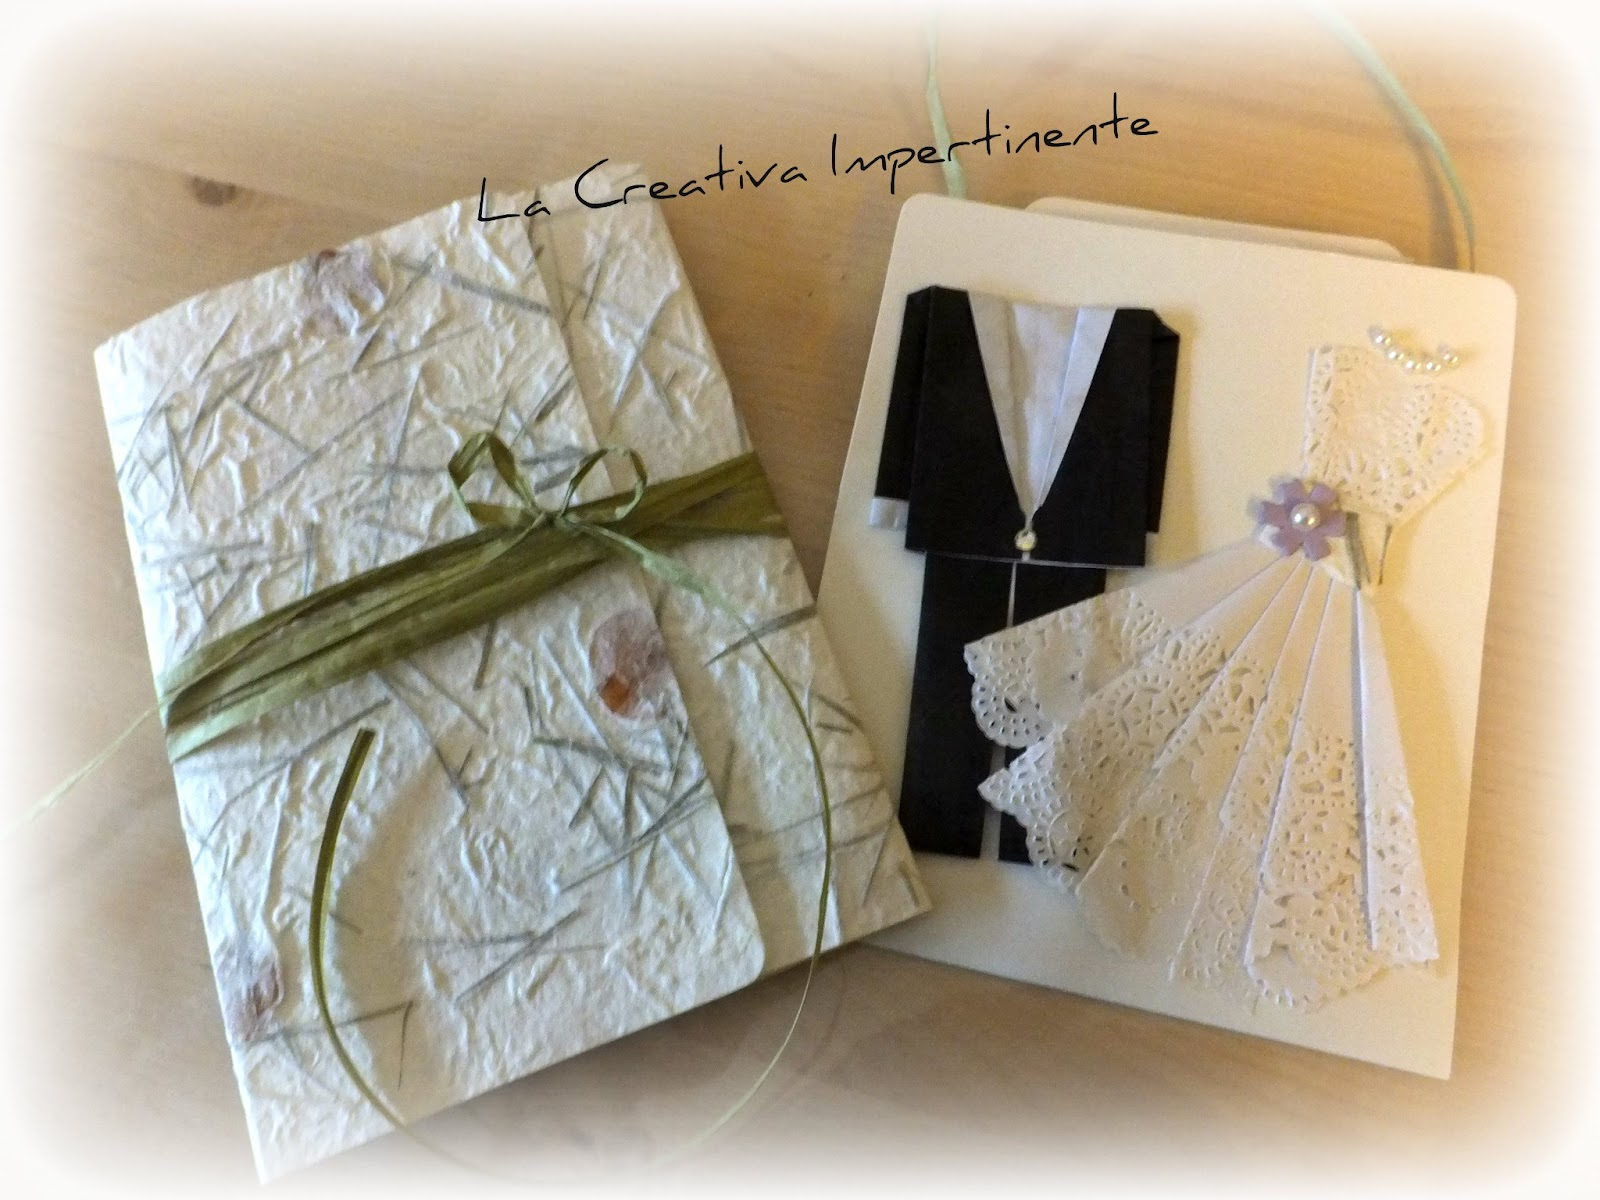 Amato La Creativa Impertinente: Scrapbooking Matrimonio: un biglietto  DO04